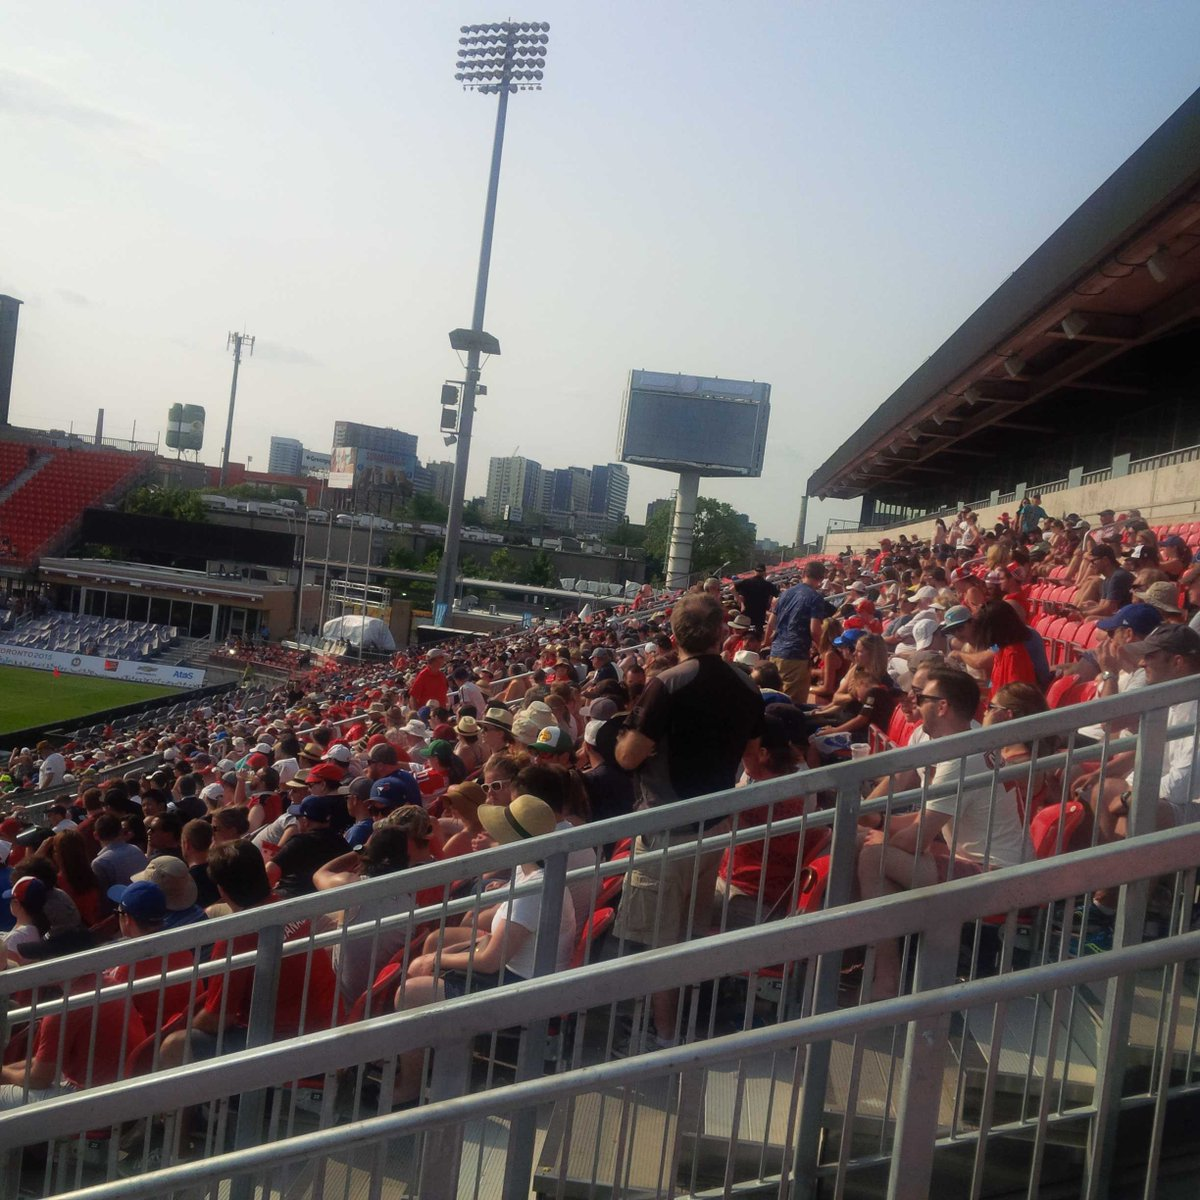 Good crowd for Rugby 7s. #PanAmGames #Mississaugacheers http://t.co/sR1hie3tiK